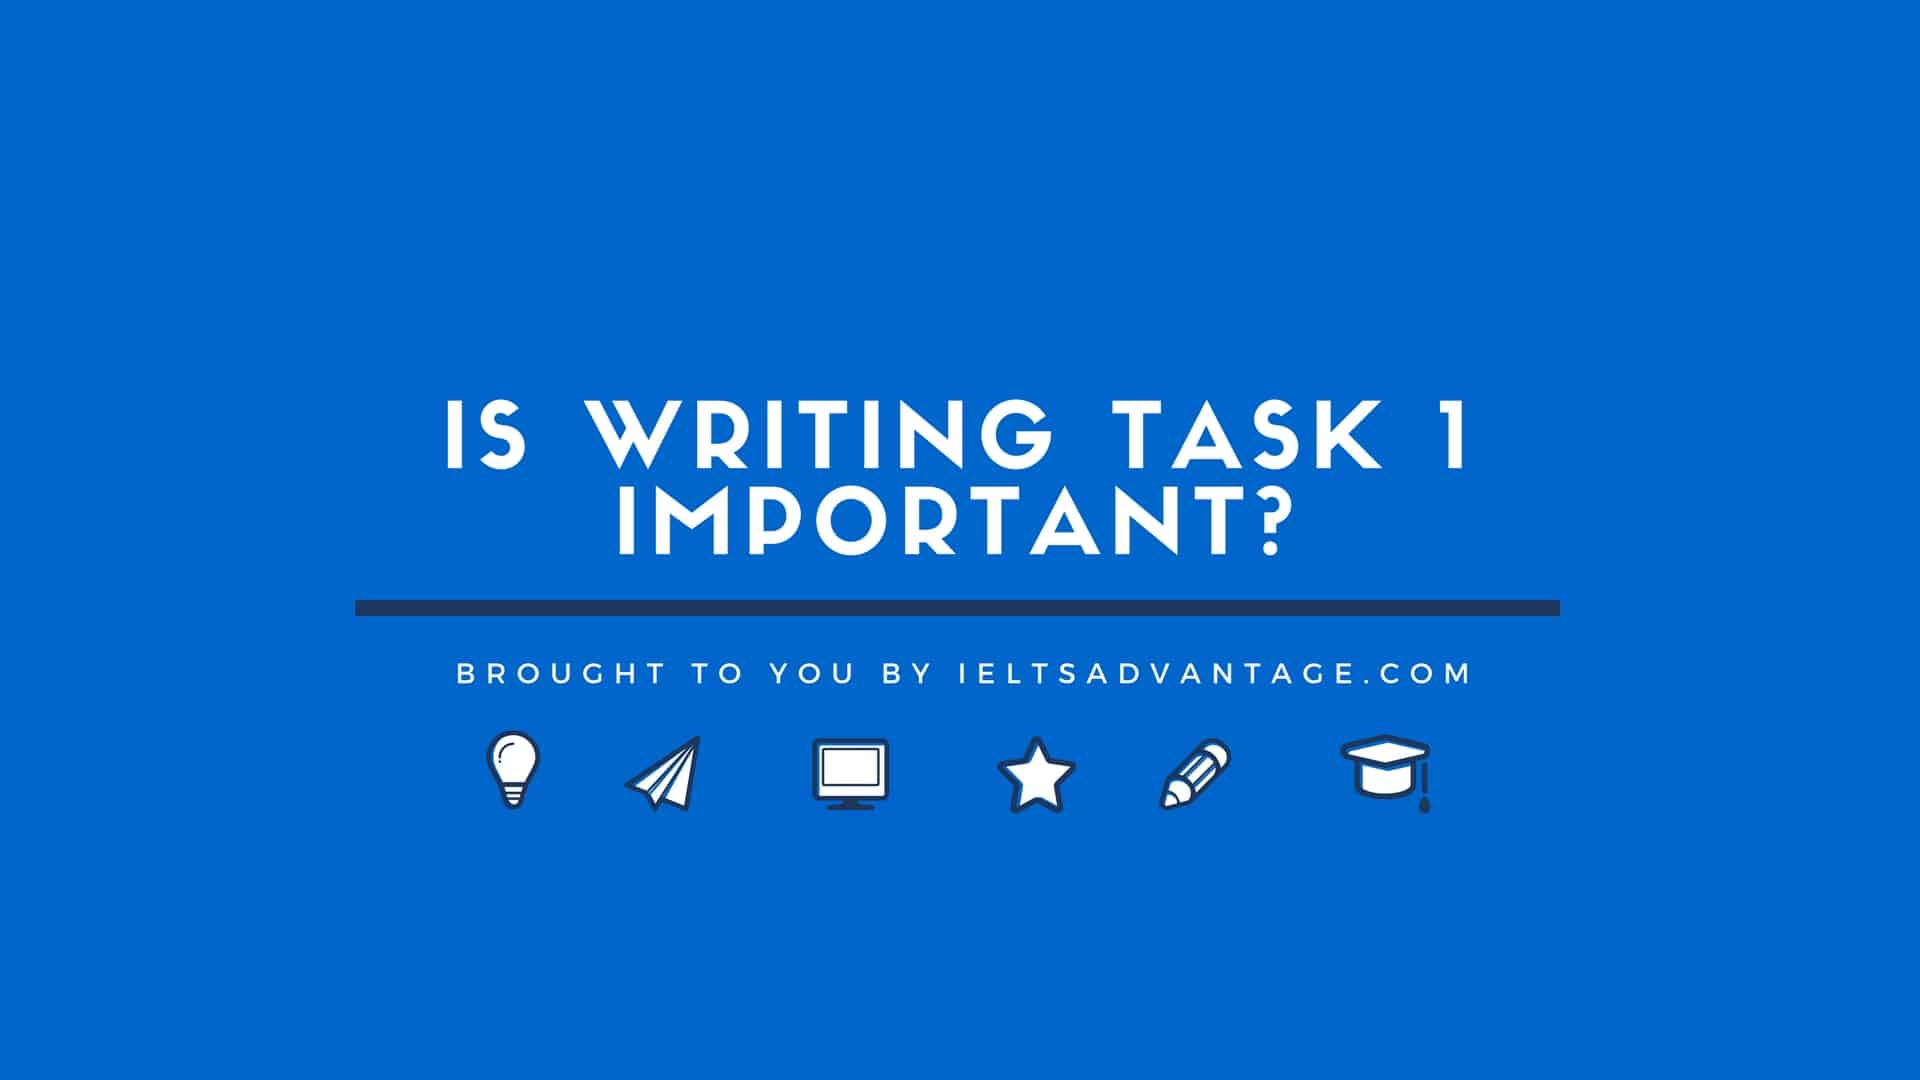 6 Is Writing Task 1 Important?